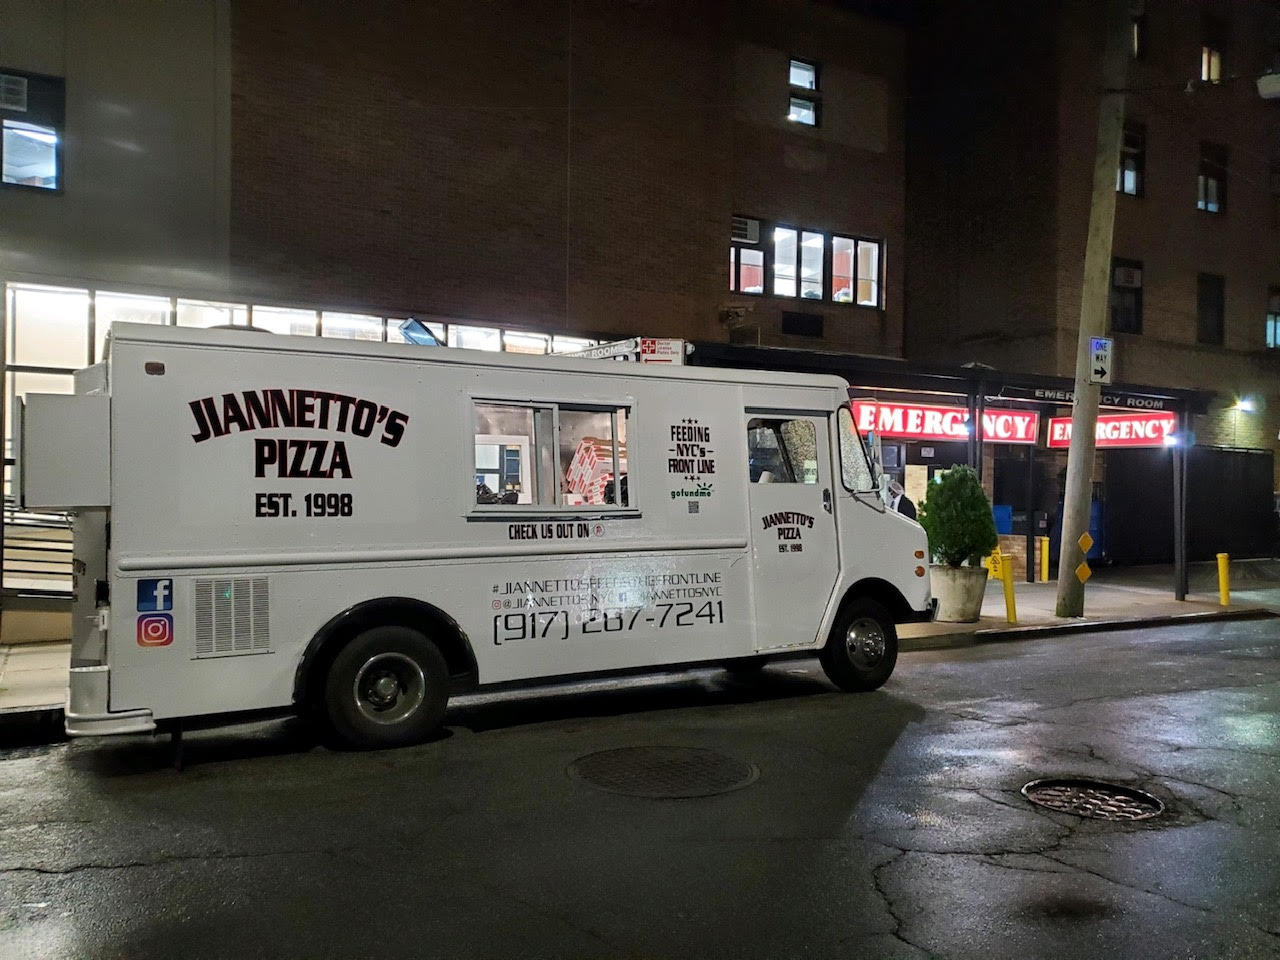 Jiannetto's Pizza and Catering